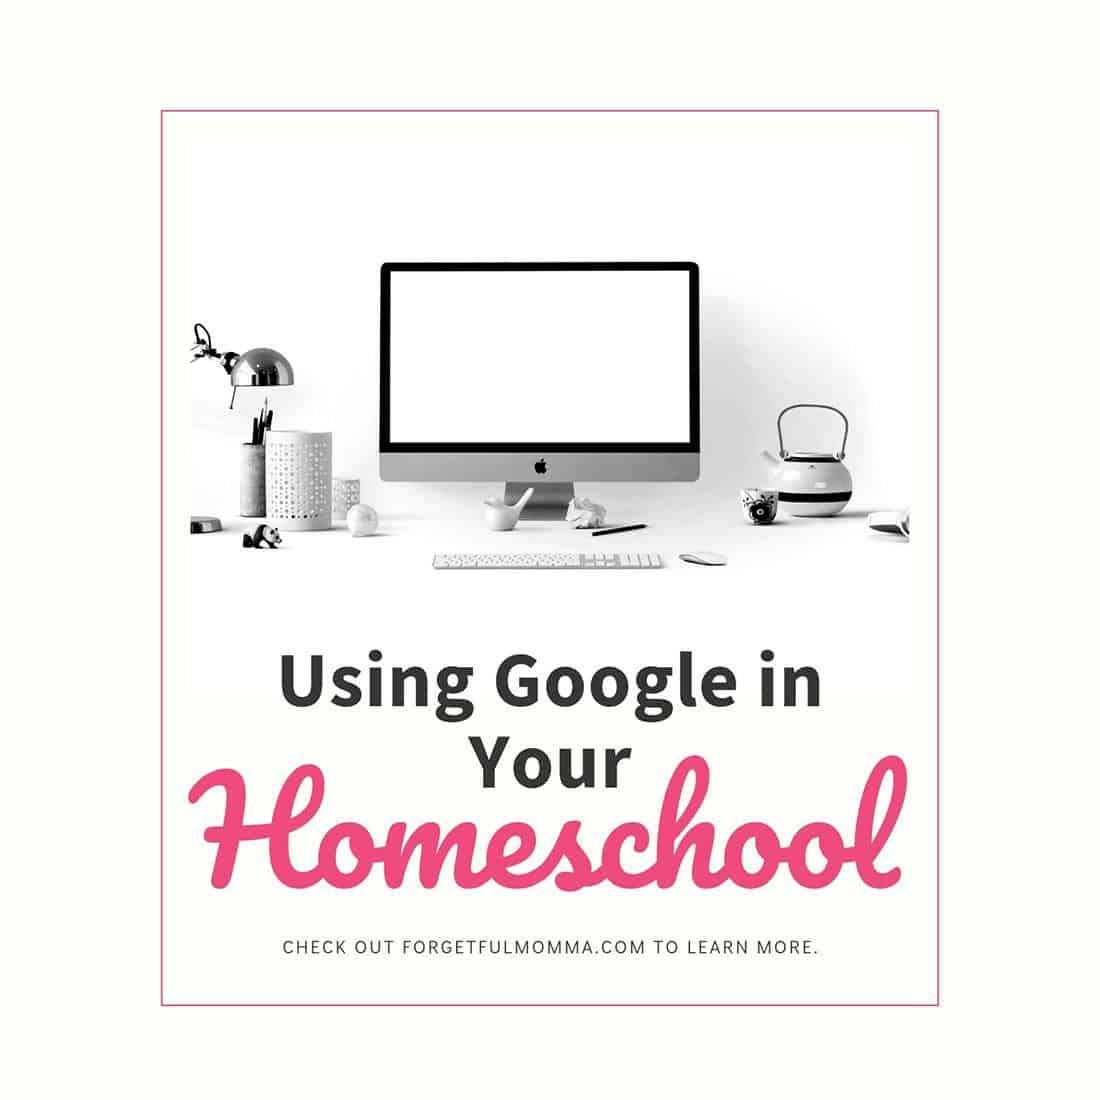 Using Google in Your homeschool